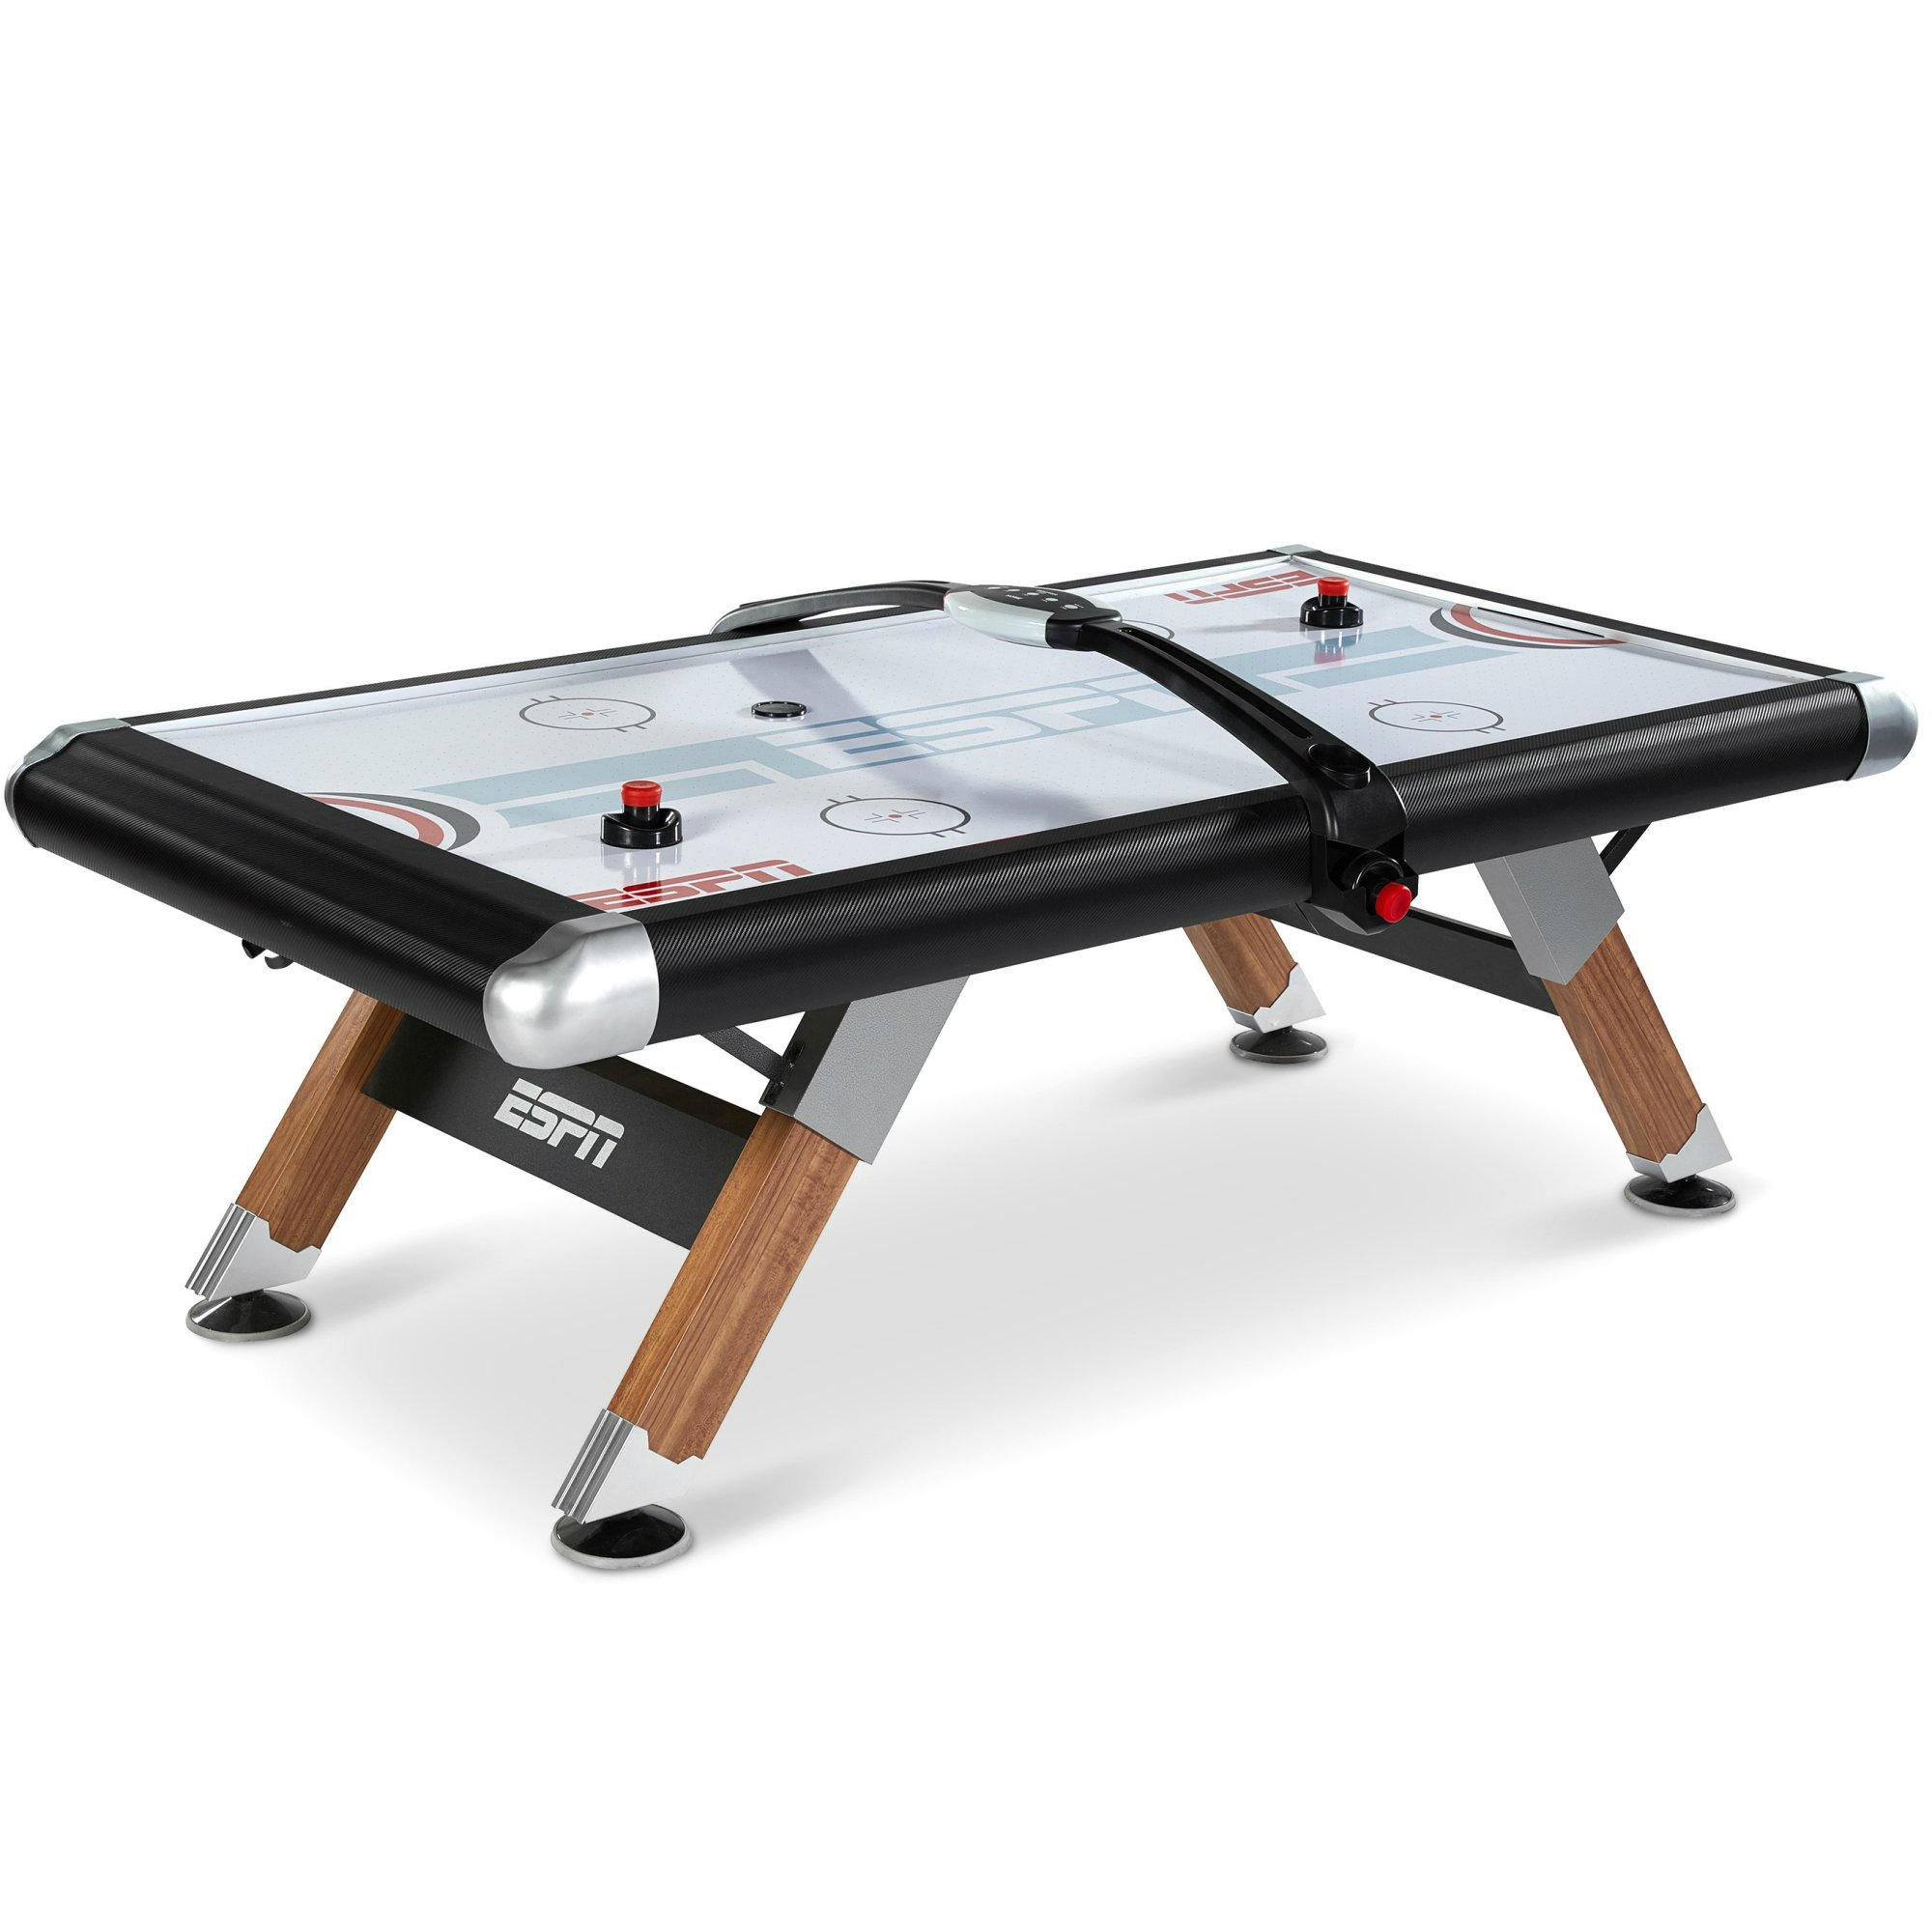 ESPN Air Hockey Table with Overhead Electronic Scorer and Table Cover Family Indoor Game 8 Ft. by ESPN